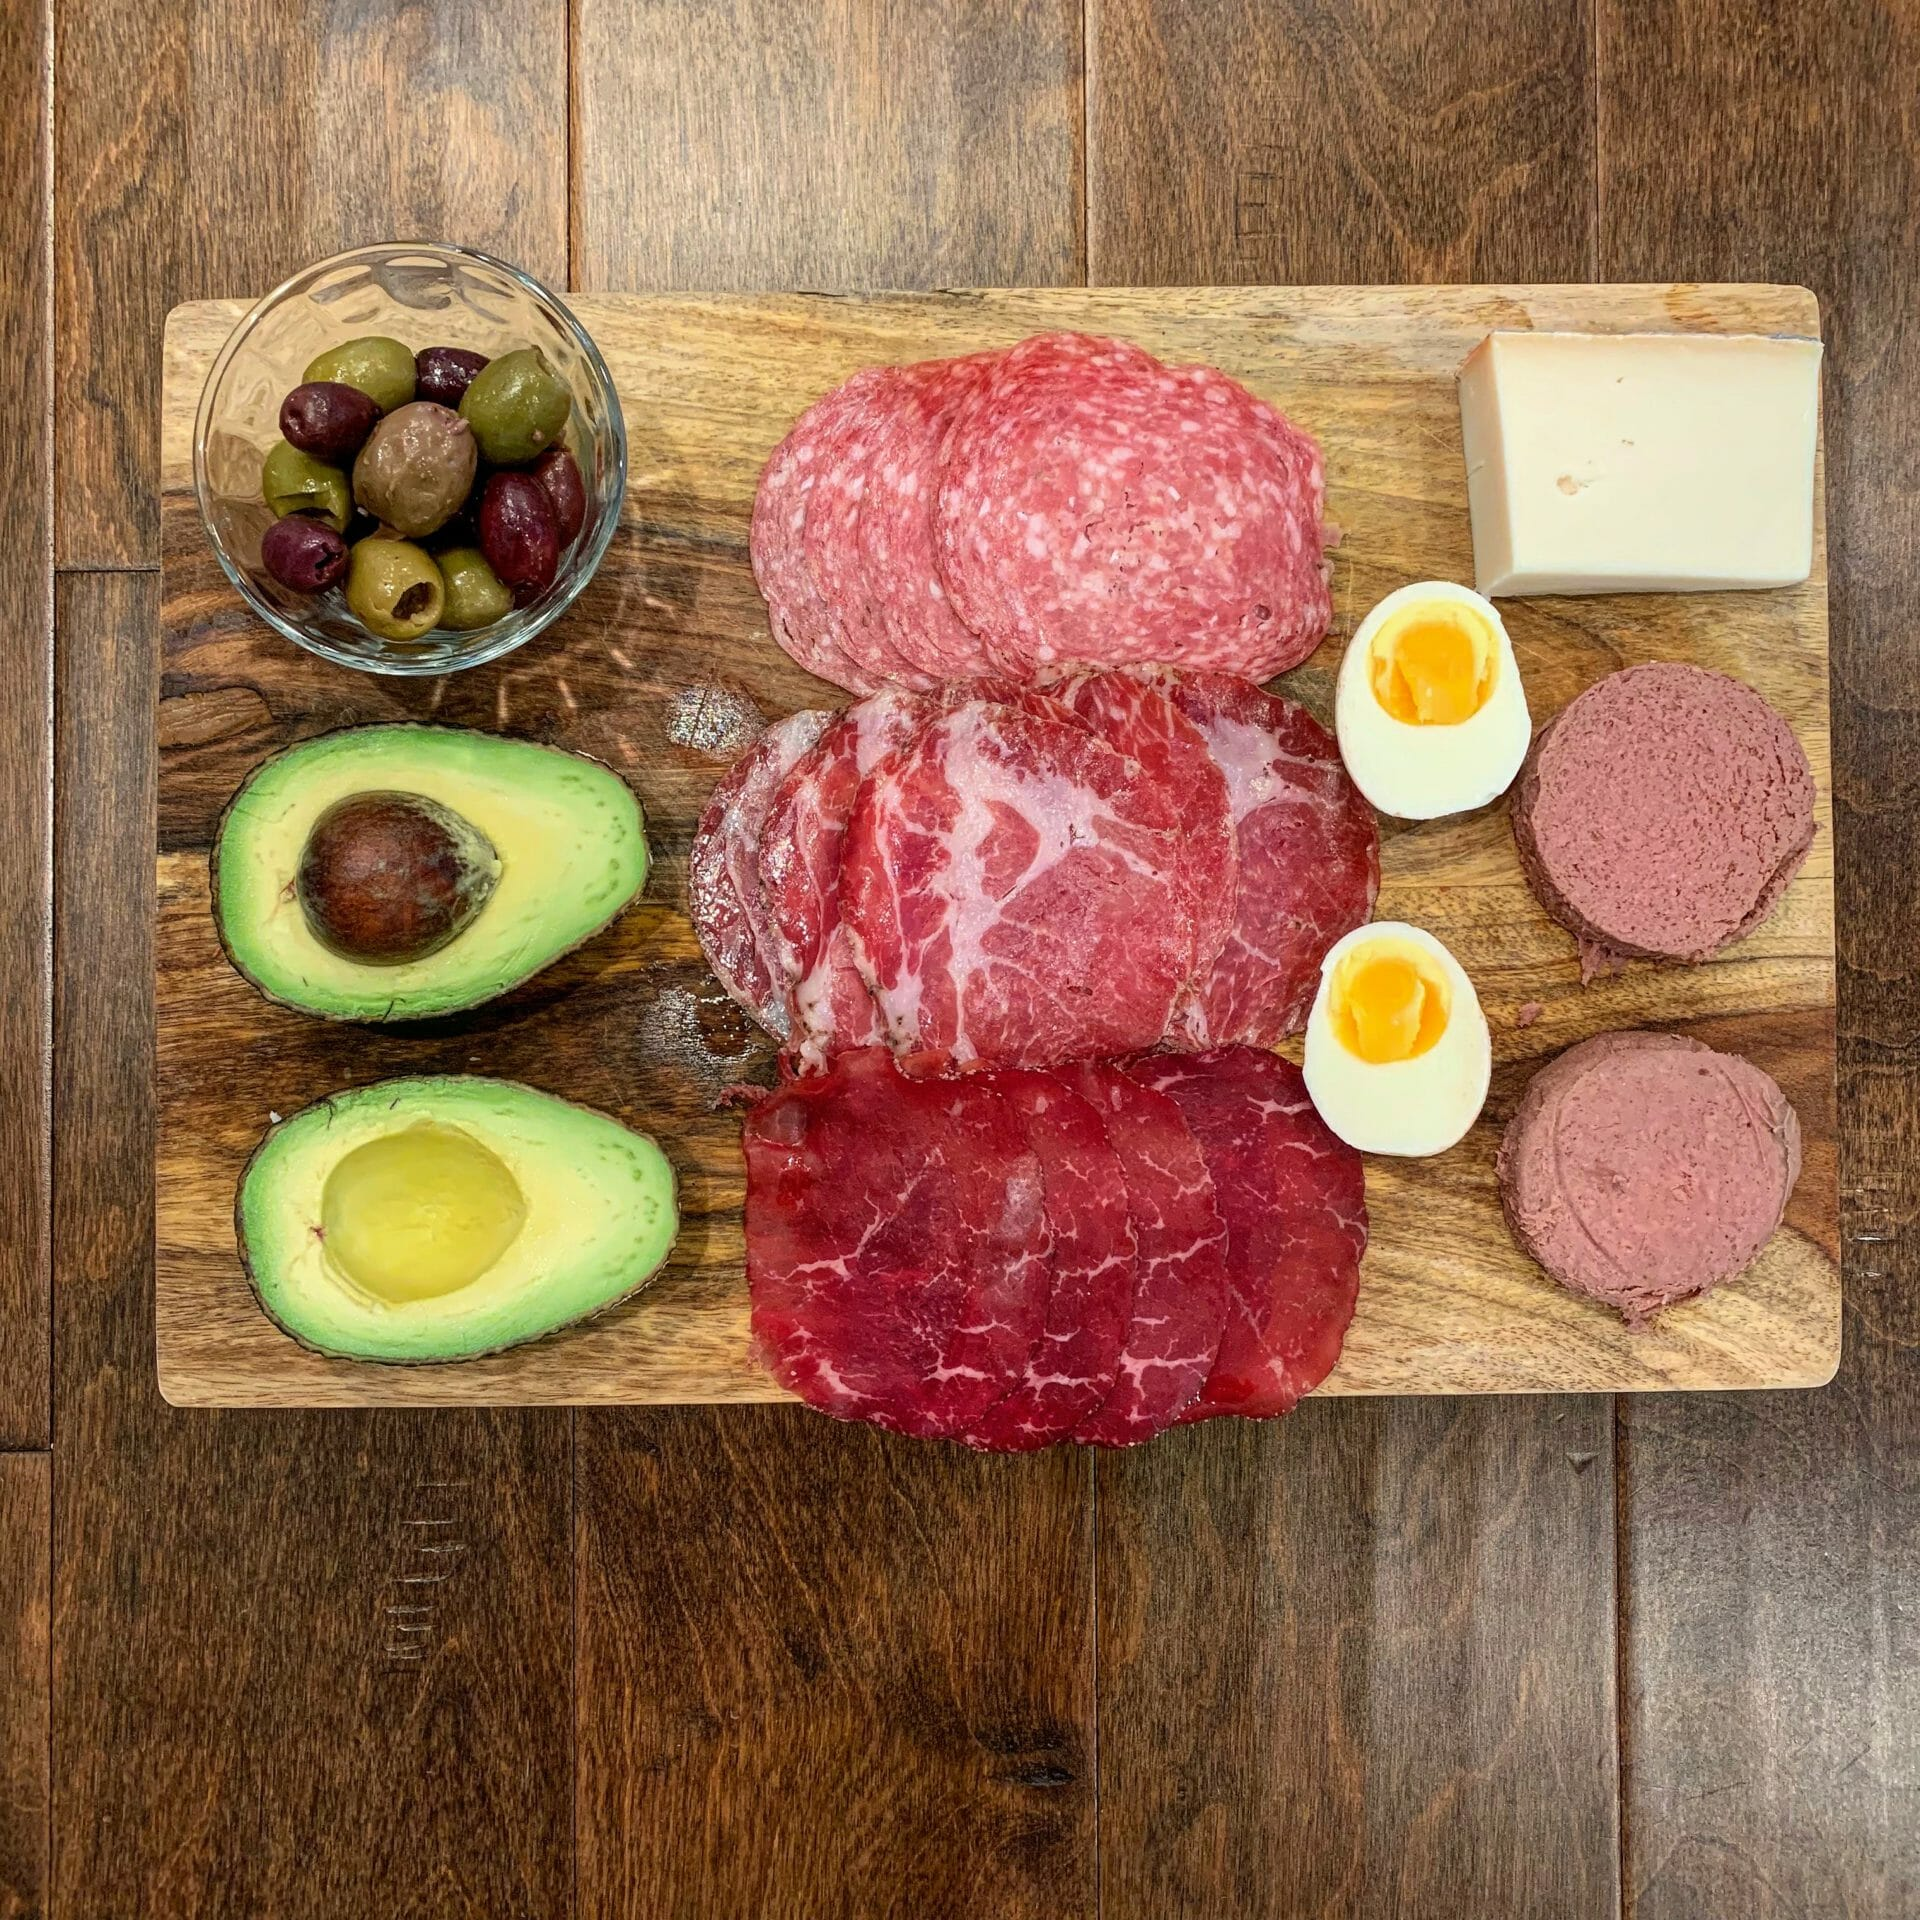 Dinner plate with uncured cold cuts, avocado, olives, goat cheese, boiled egg and pastured liverwurst